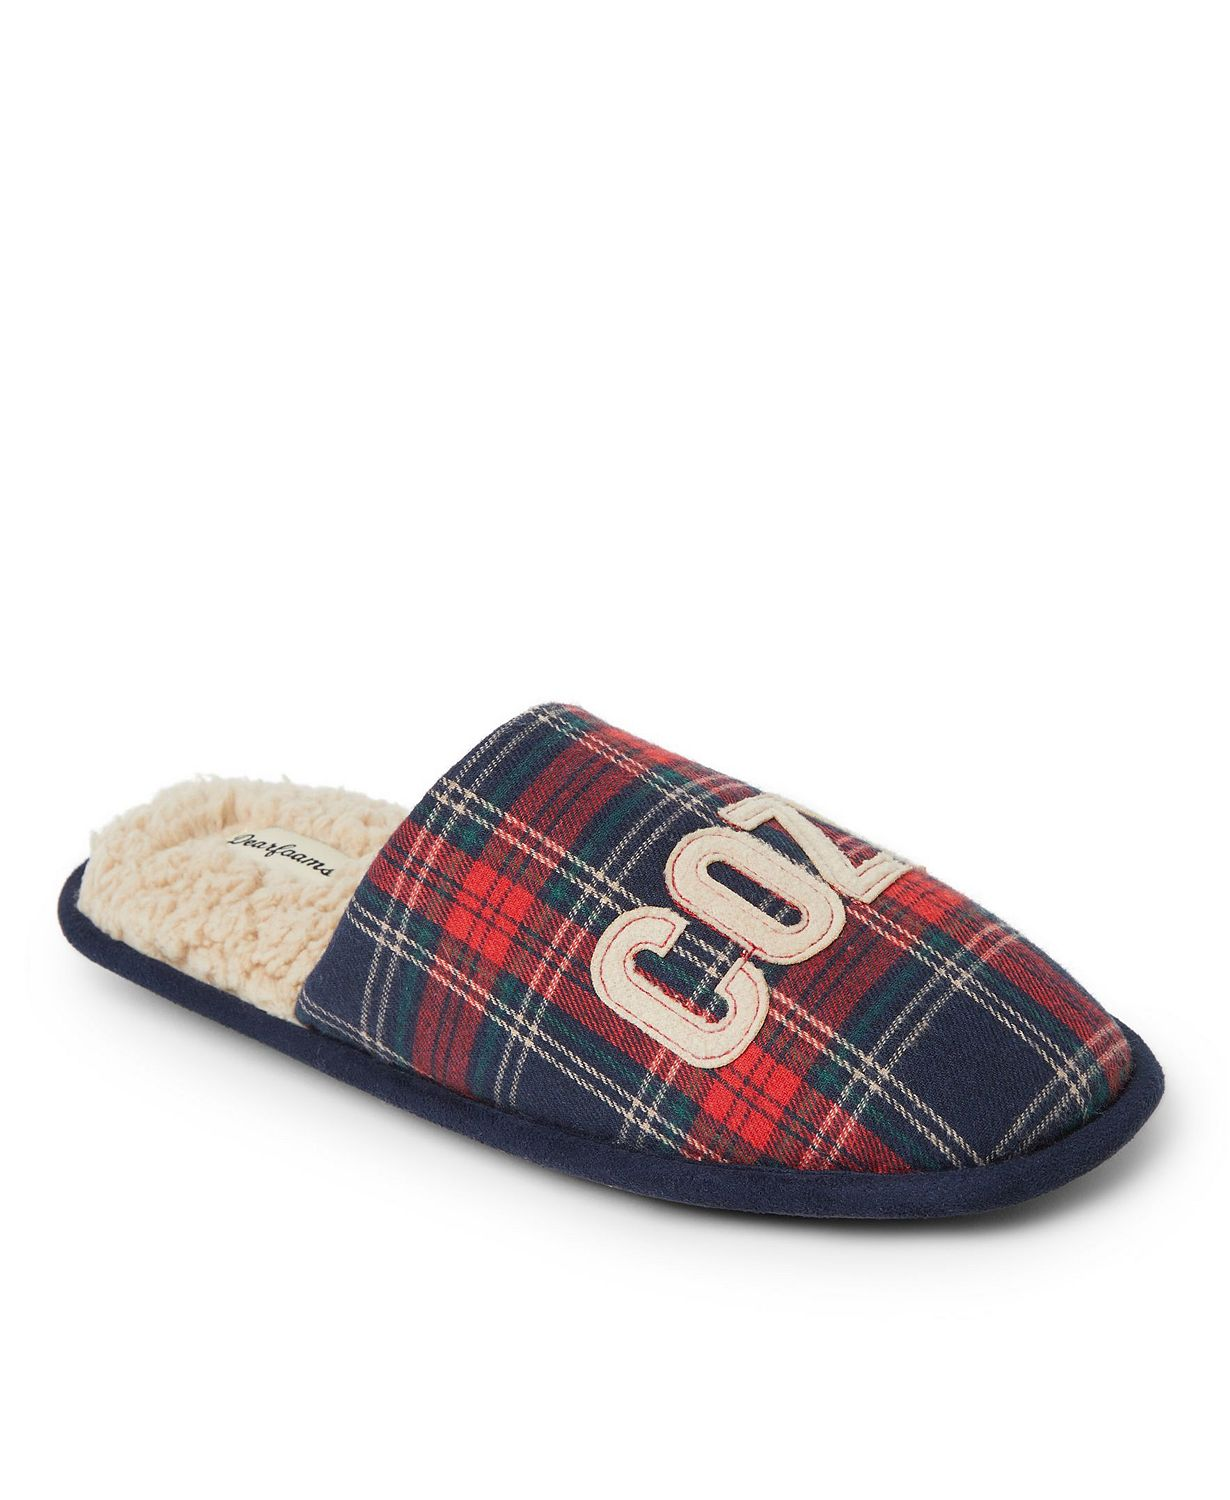 Plaid sherpa lined scuff slippers with COZY stitched on the suppers. #fallplaid #madforplaid #sherpaslippers